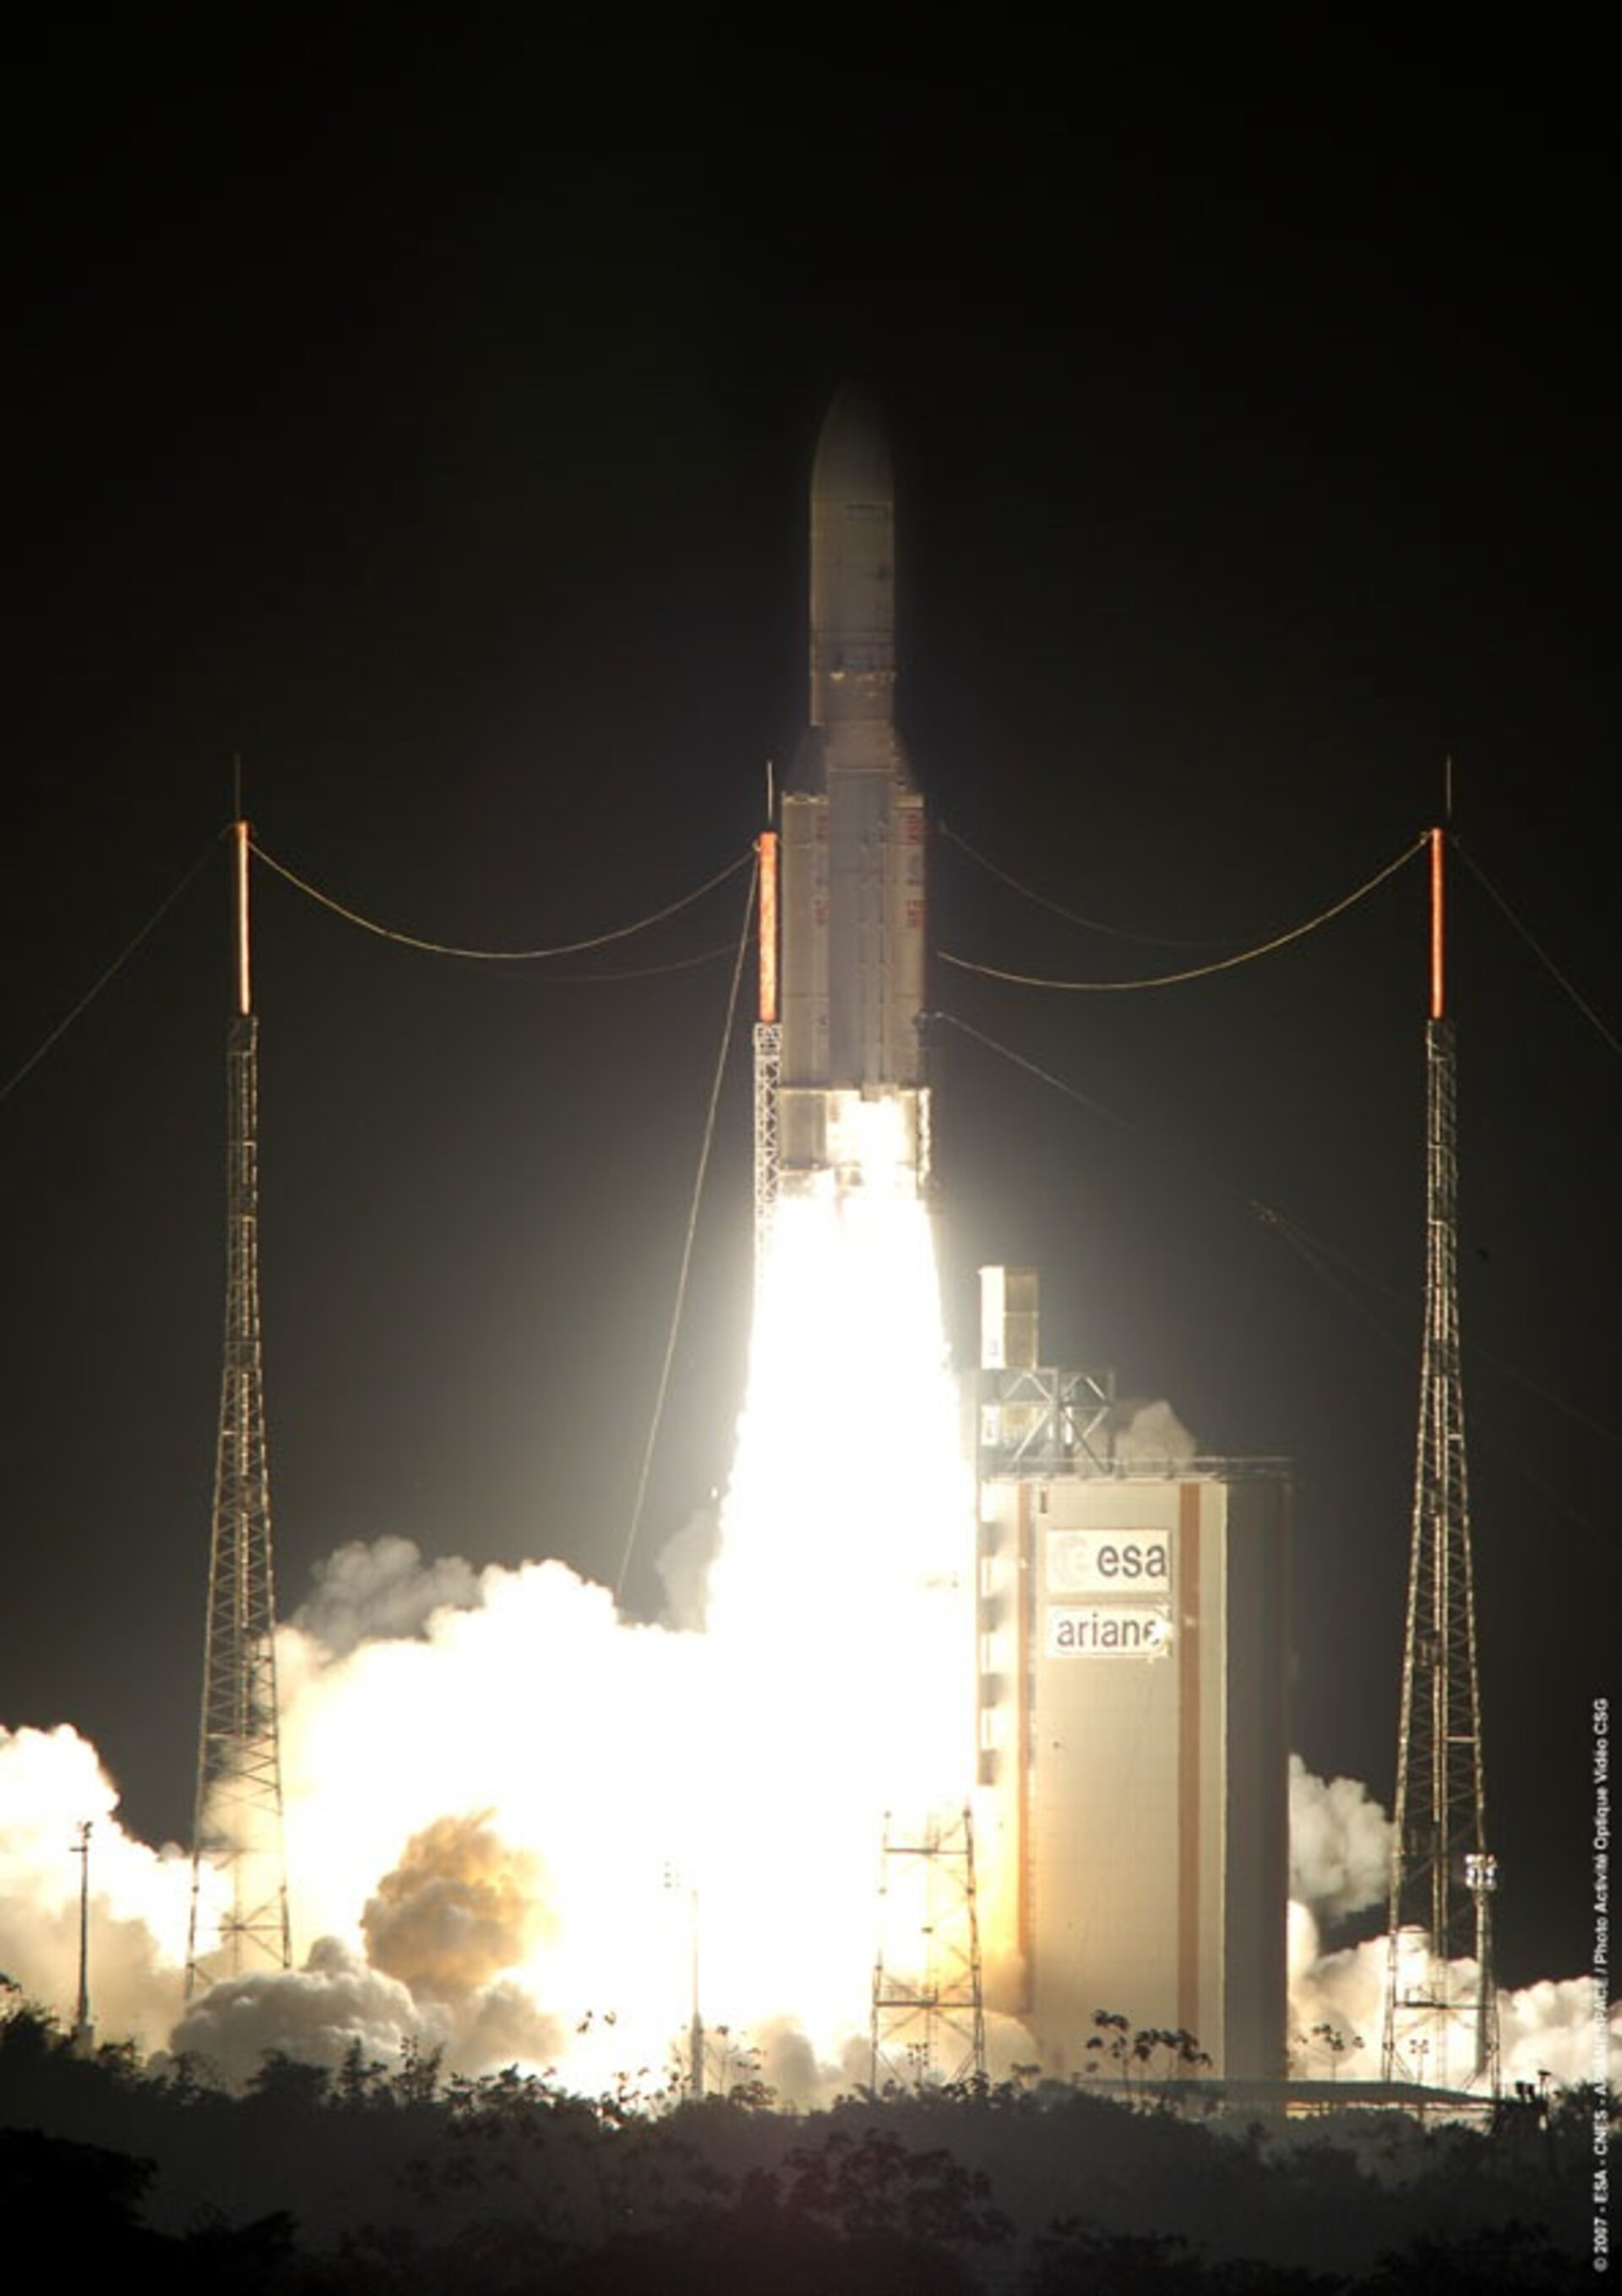 Ariane 5 ECA V177 clears the launch tower